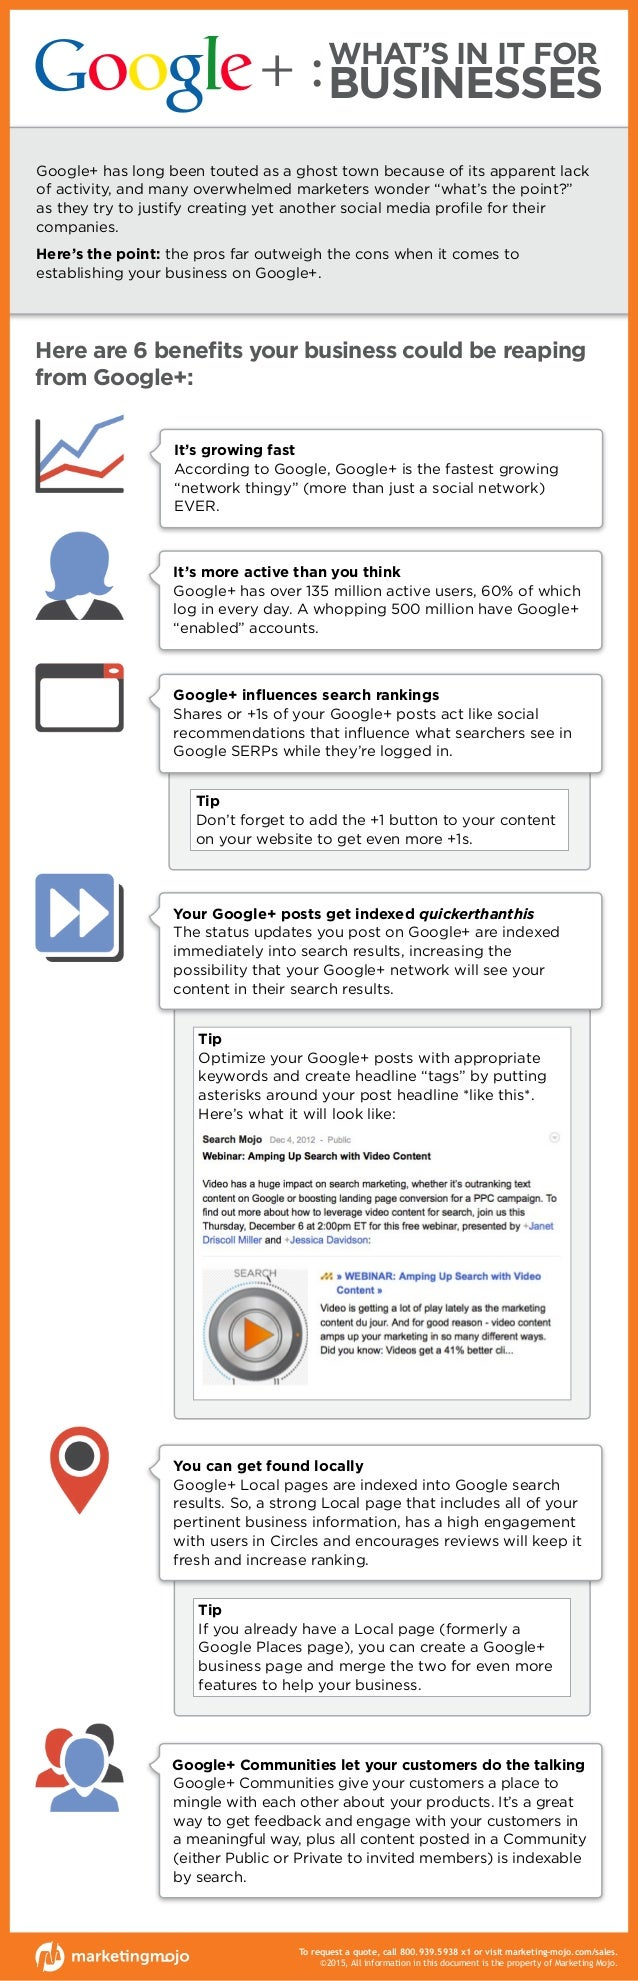 INFOGRAPHIC: Google+ What's in it for Businesses